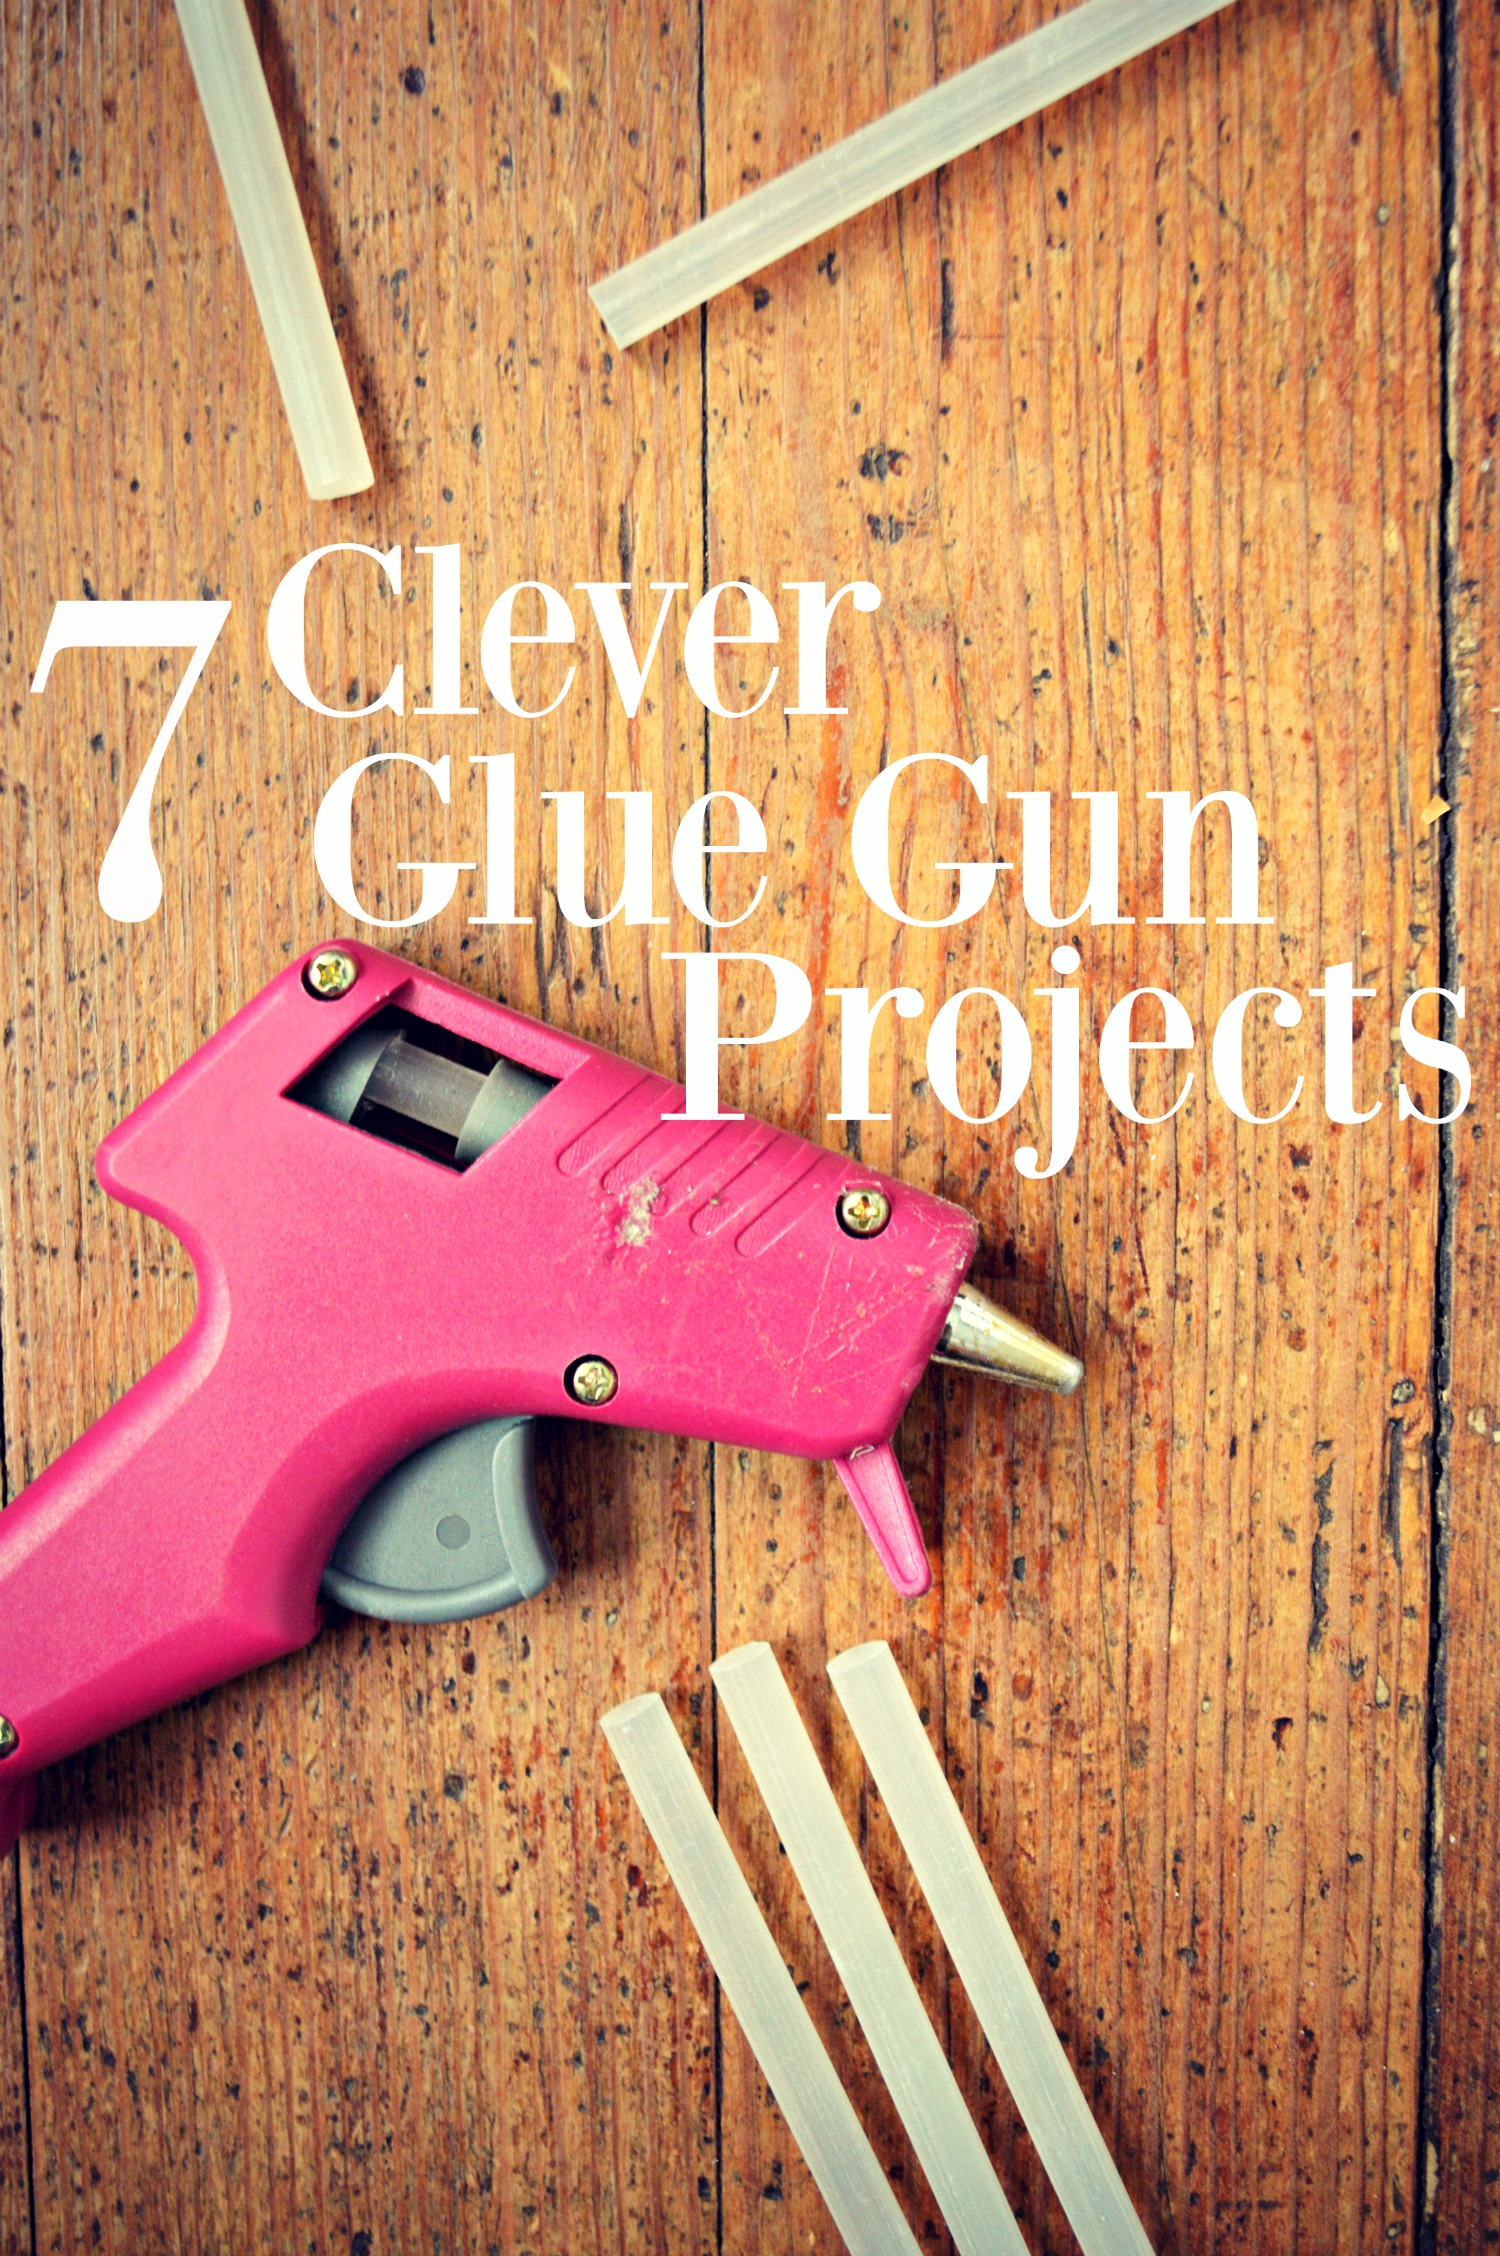 Need some new ways to use your glue gun? Here are 7 projects that you will want to do right now.